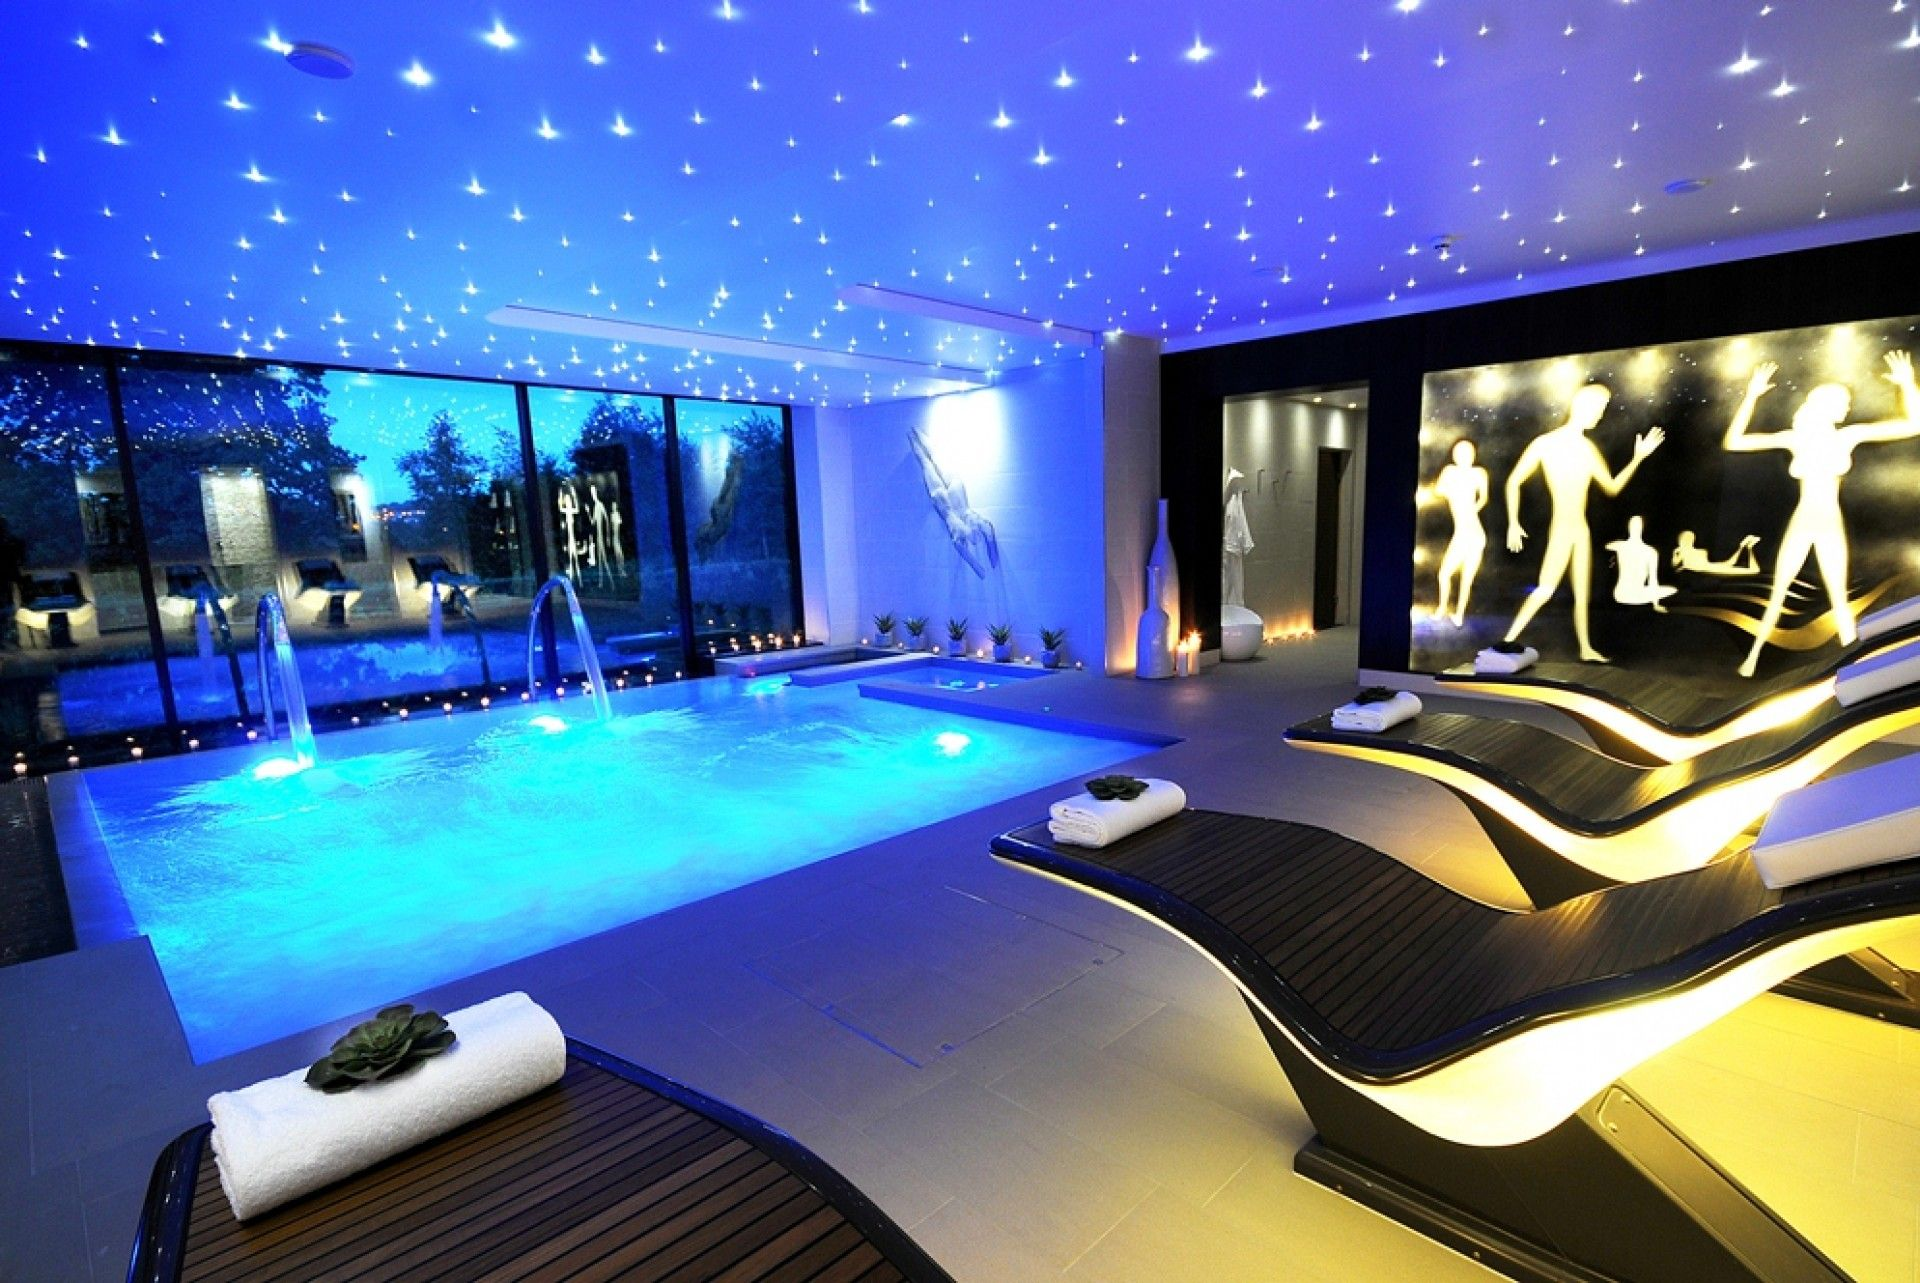 indoor swimming pool ideas with extravagant design - Big Houses With Pools Inside The House